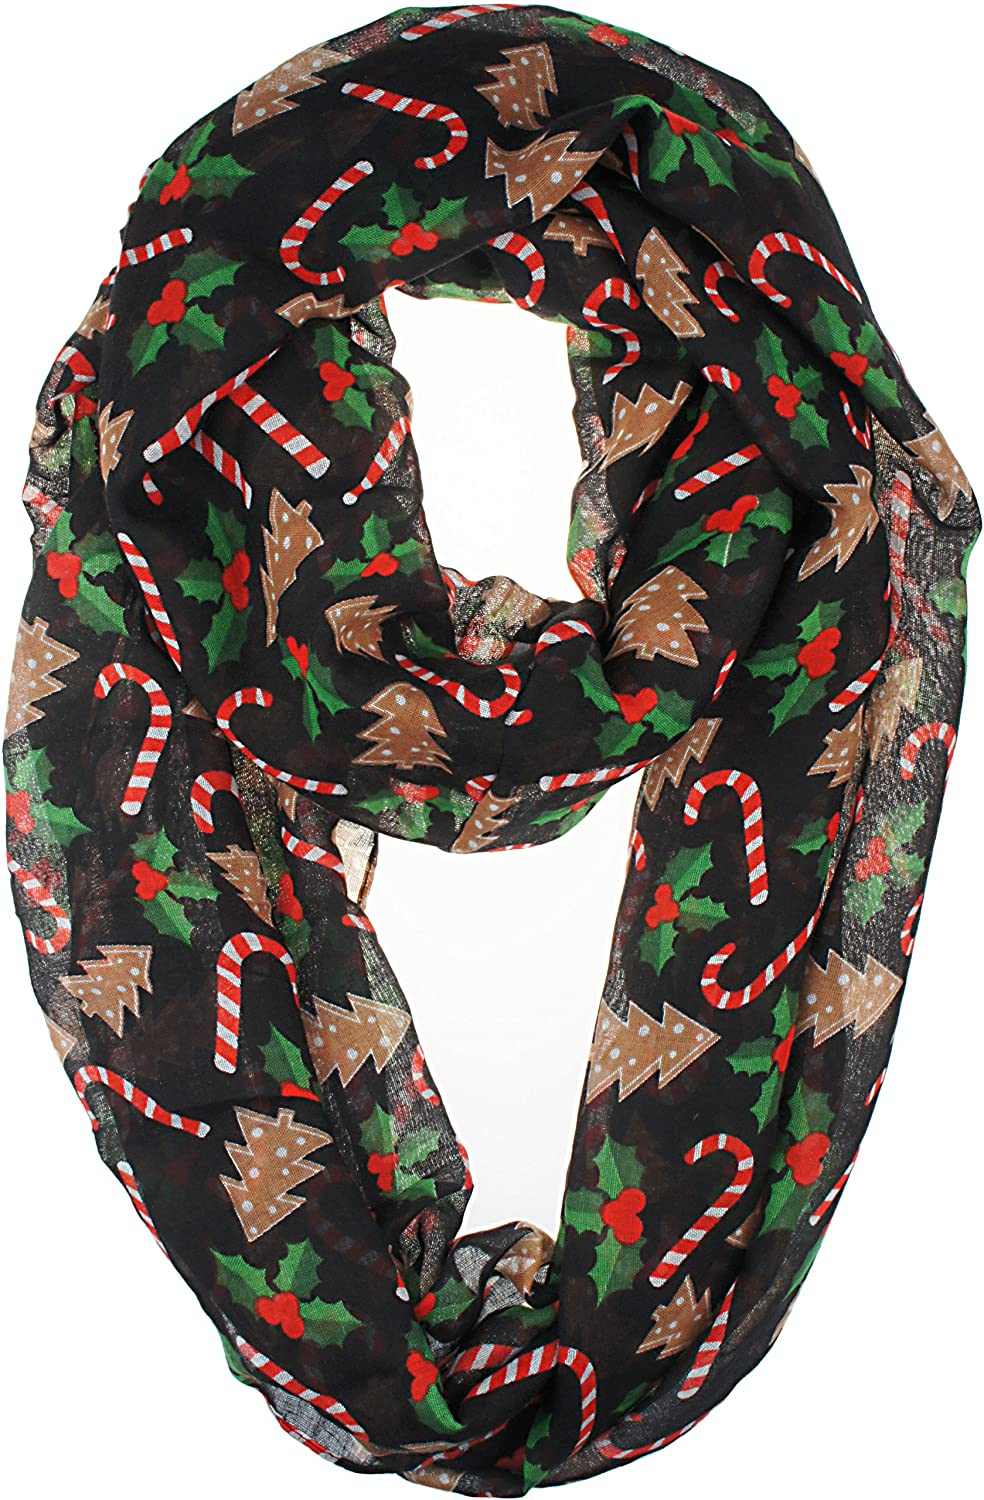 VIVIAN   VINCENT Soft Light Elegant Merry Christmas Sheer Infinity Scarf